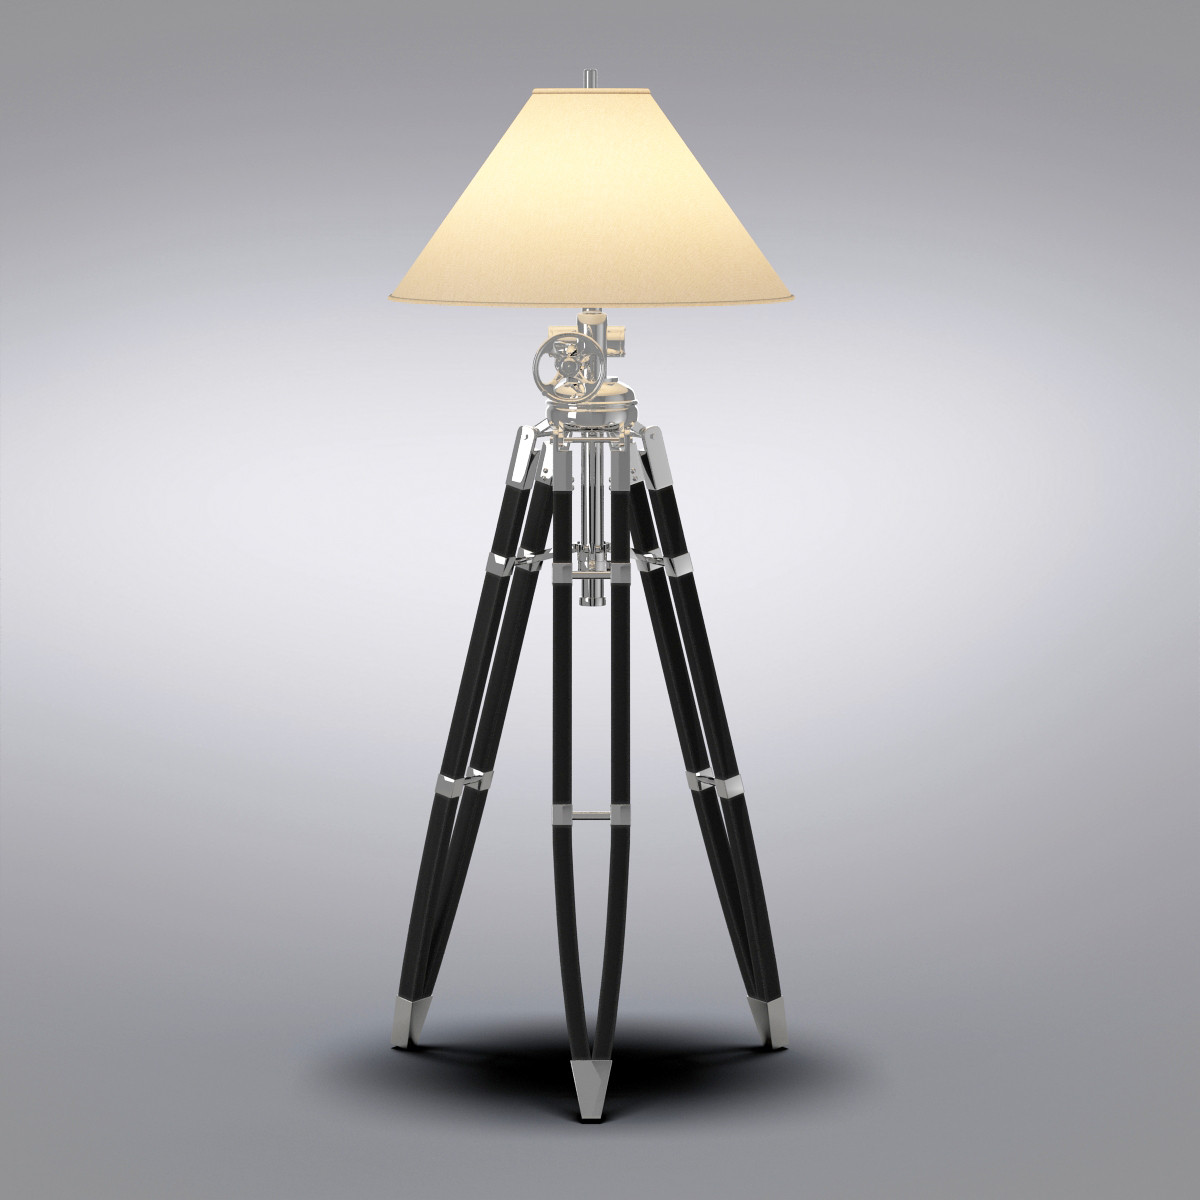 Tripod Table Lamps | Tripod Lamp | Wood Base Floor Lamp